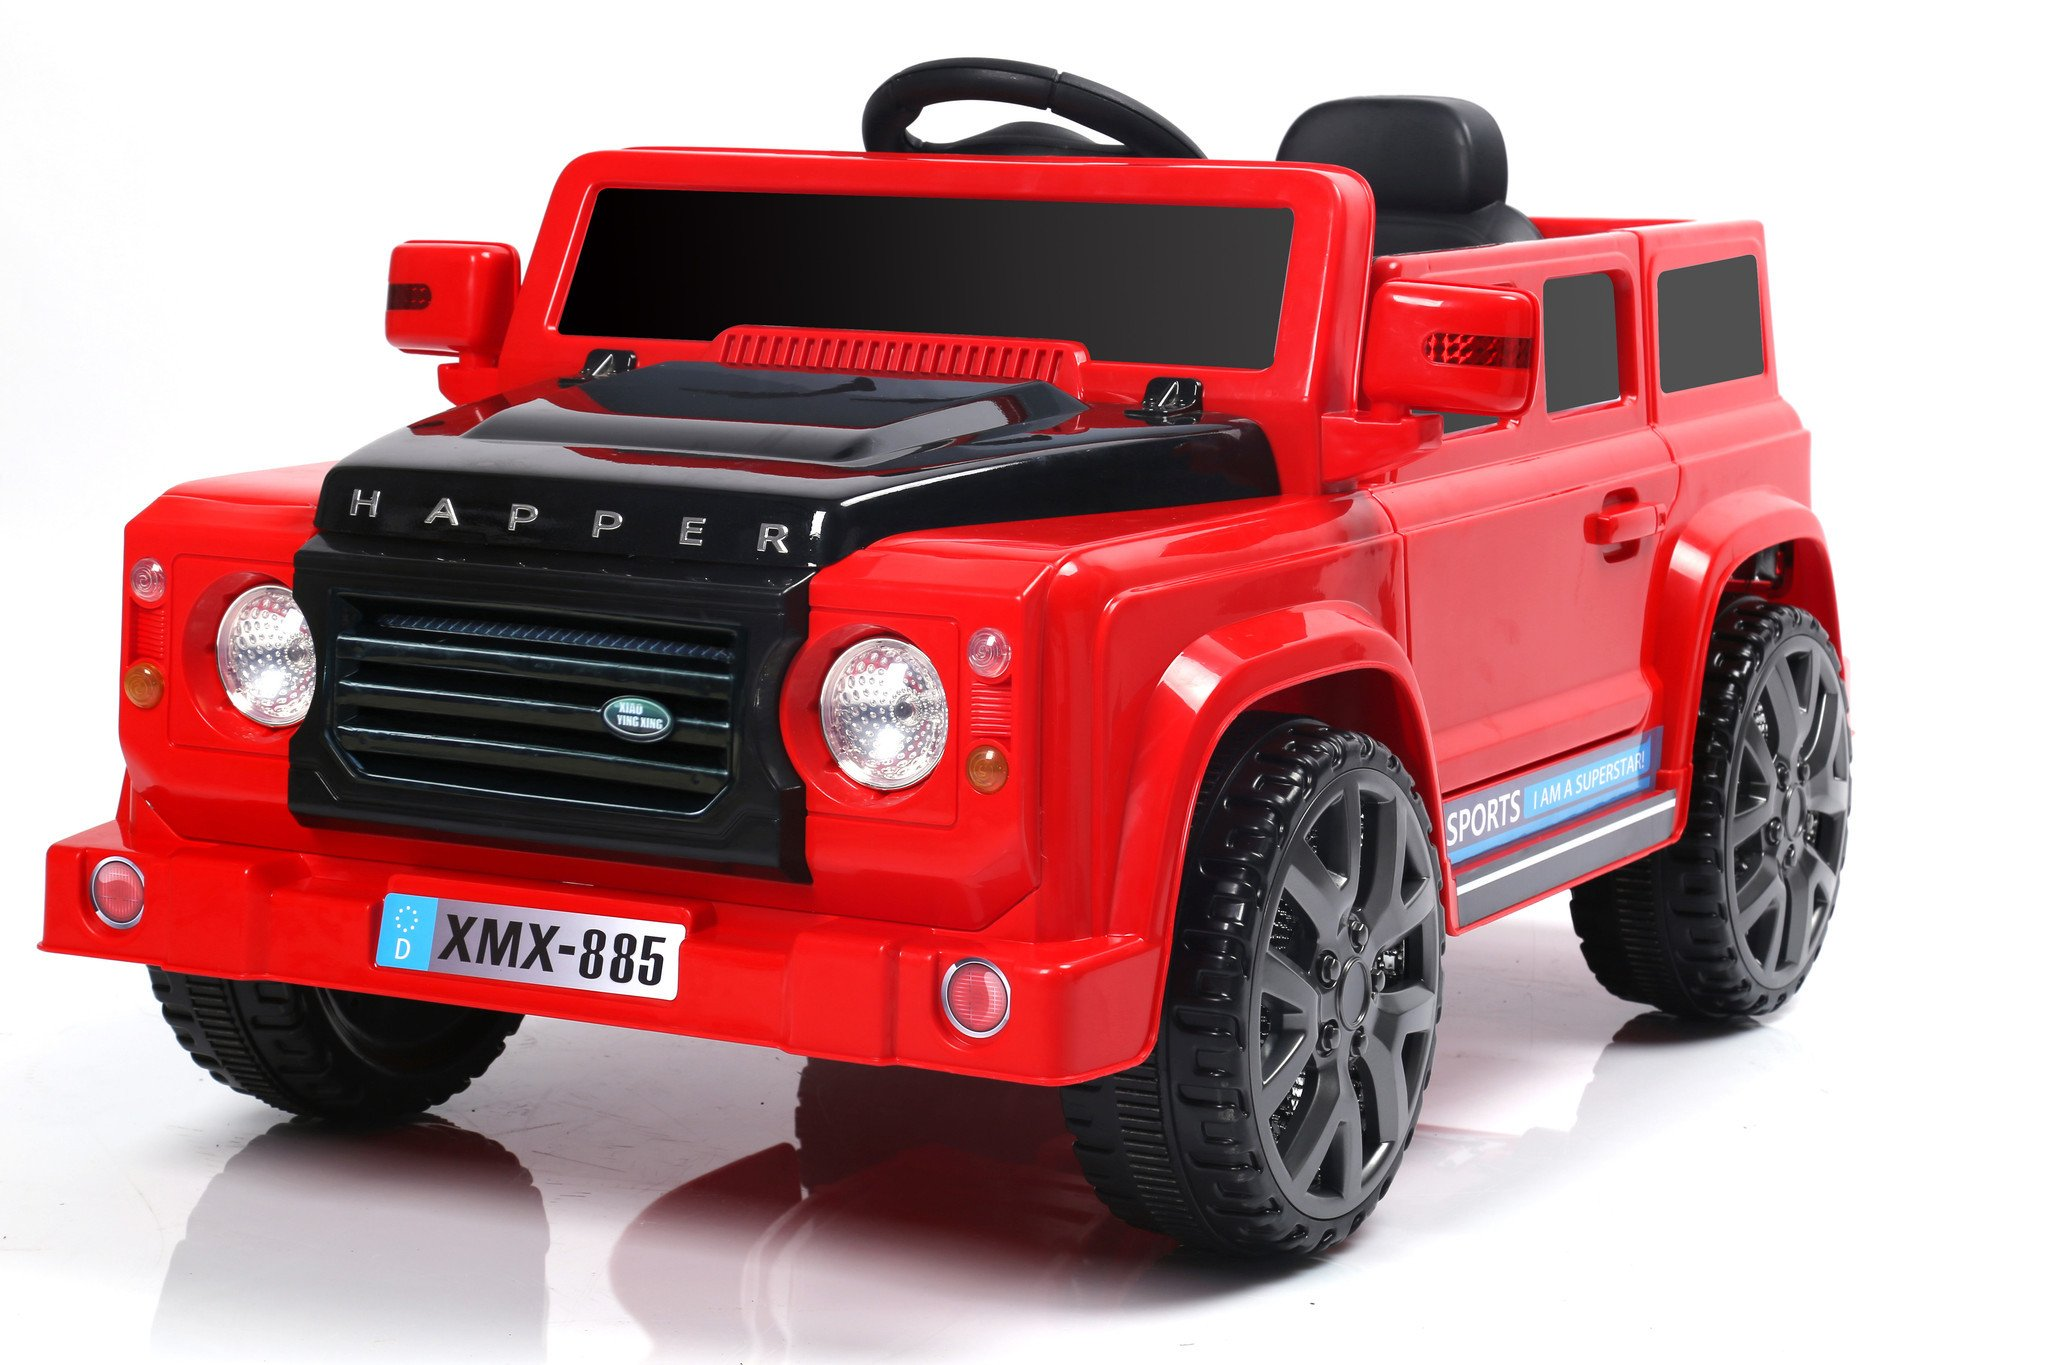 6v 50w battery powered land rover style twin motor electric toy car model xmx885 red